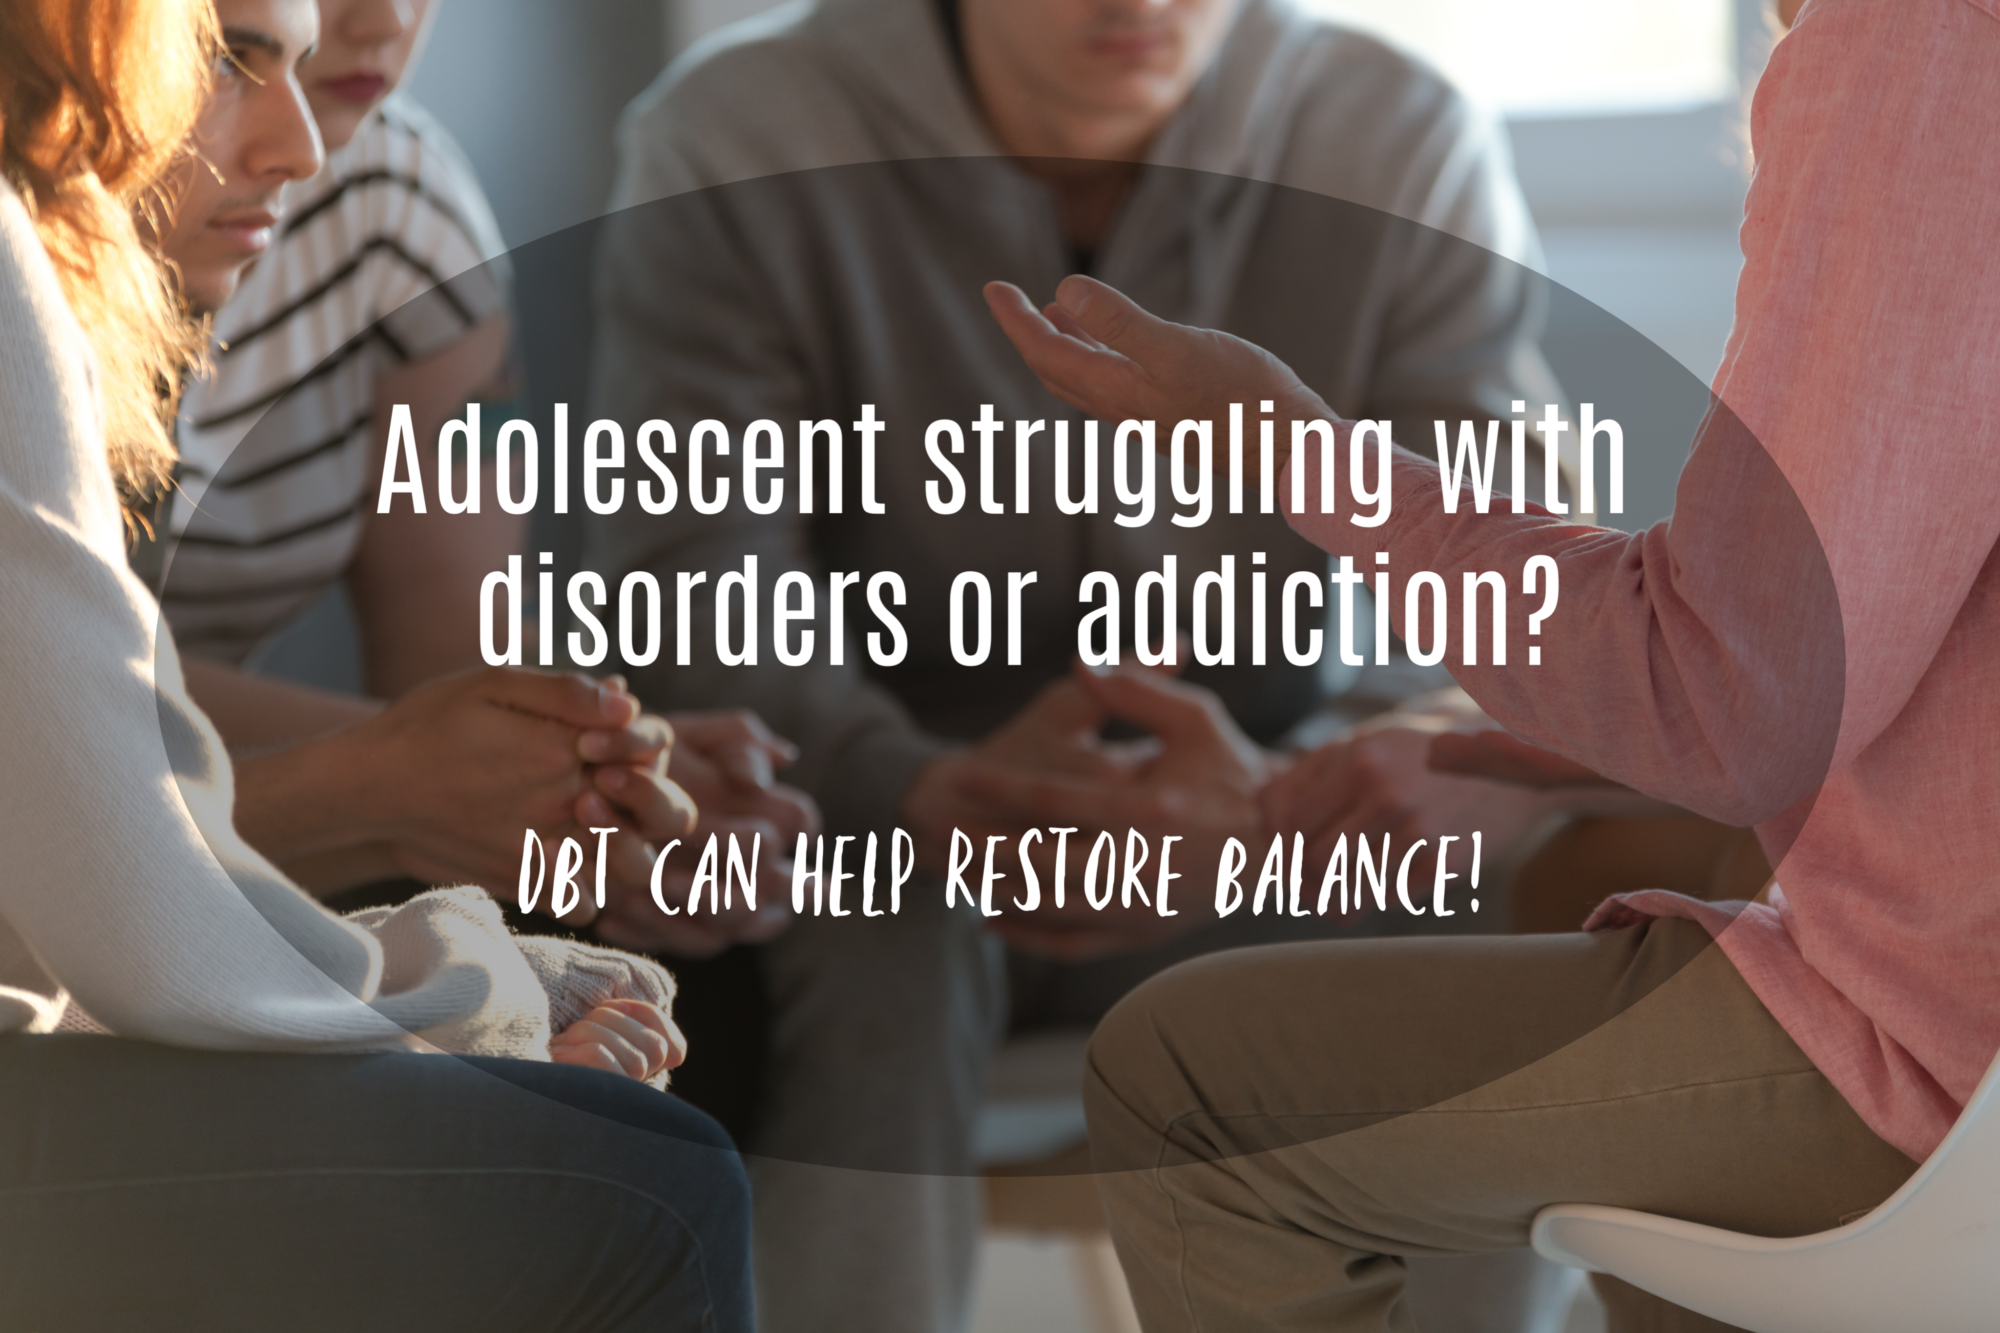 DBT can help restore balance for adolescents struggling with Disorders and addictions